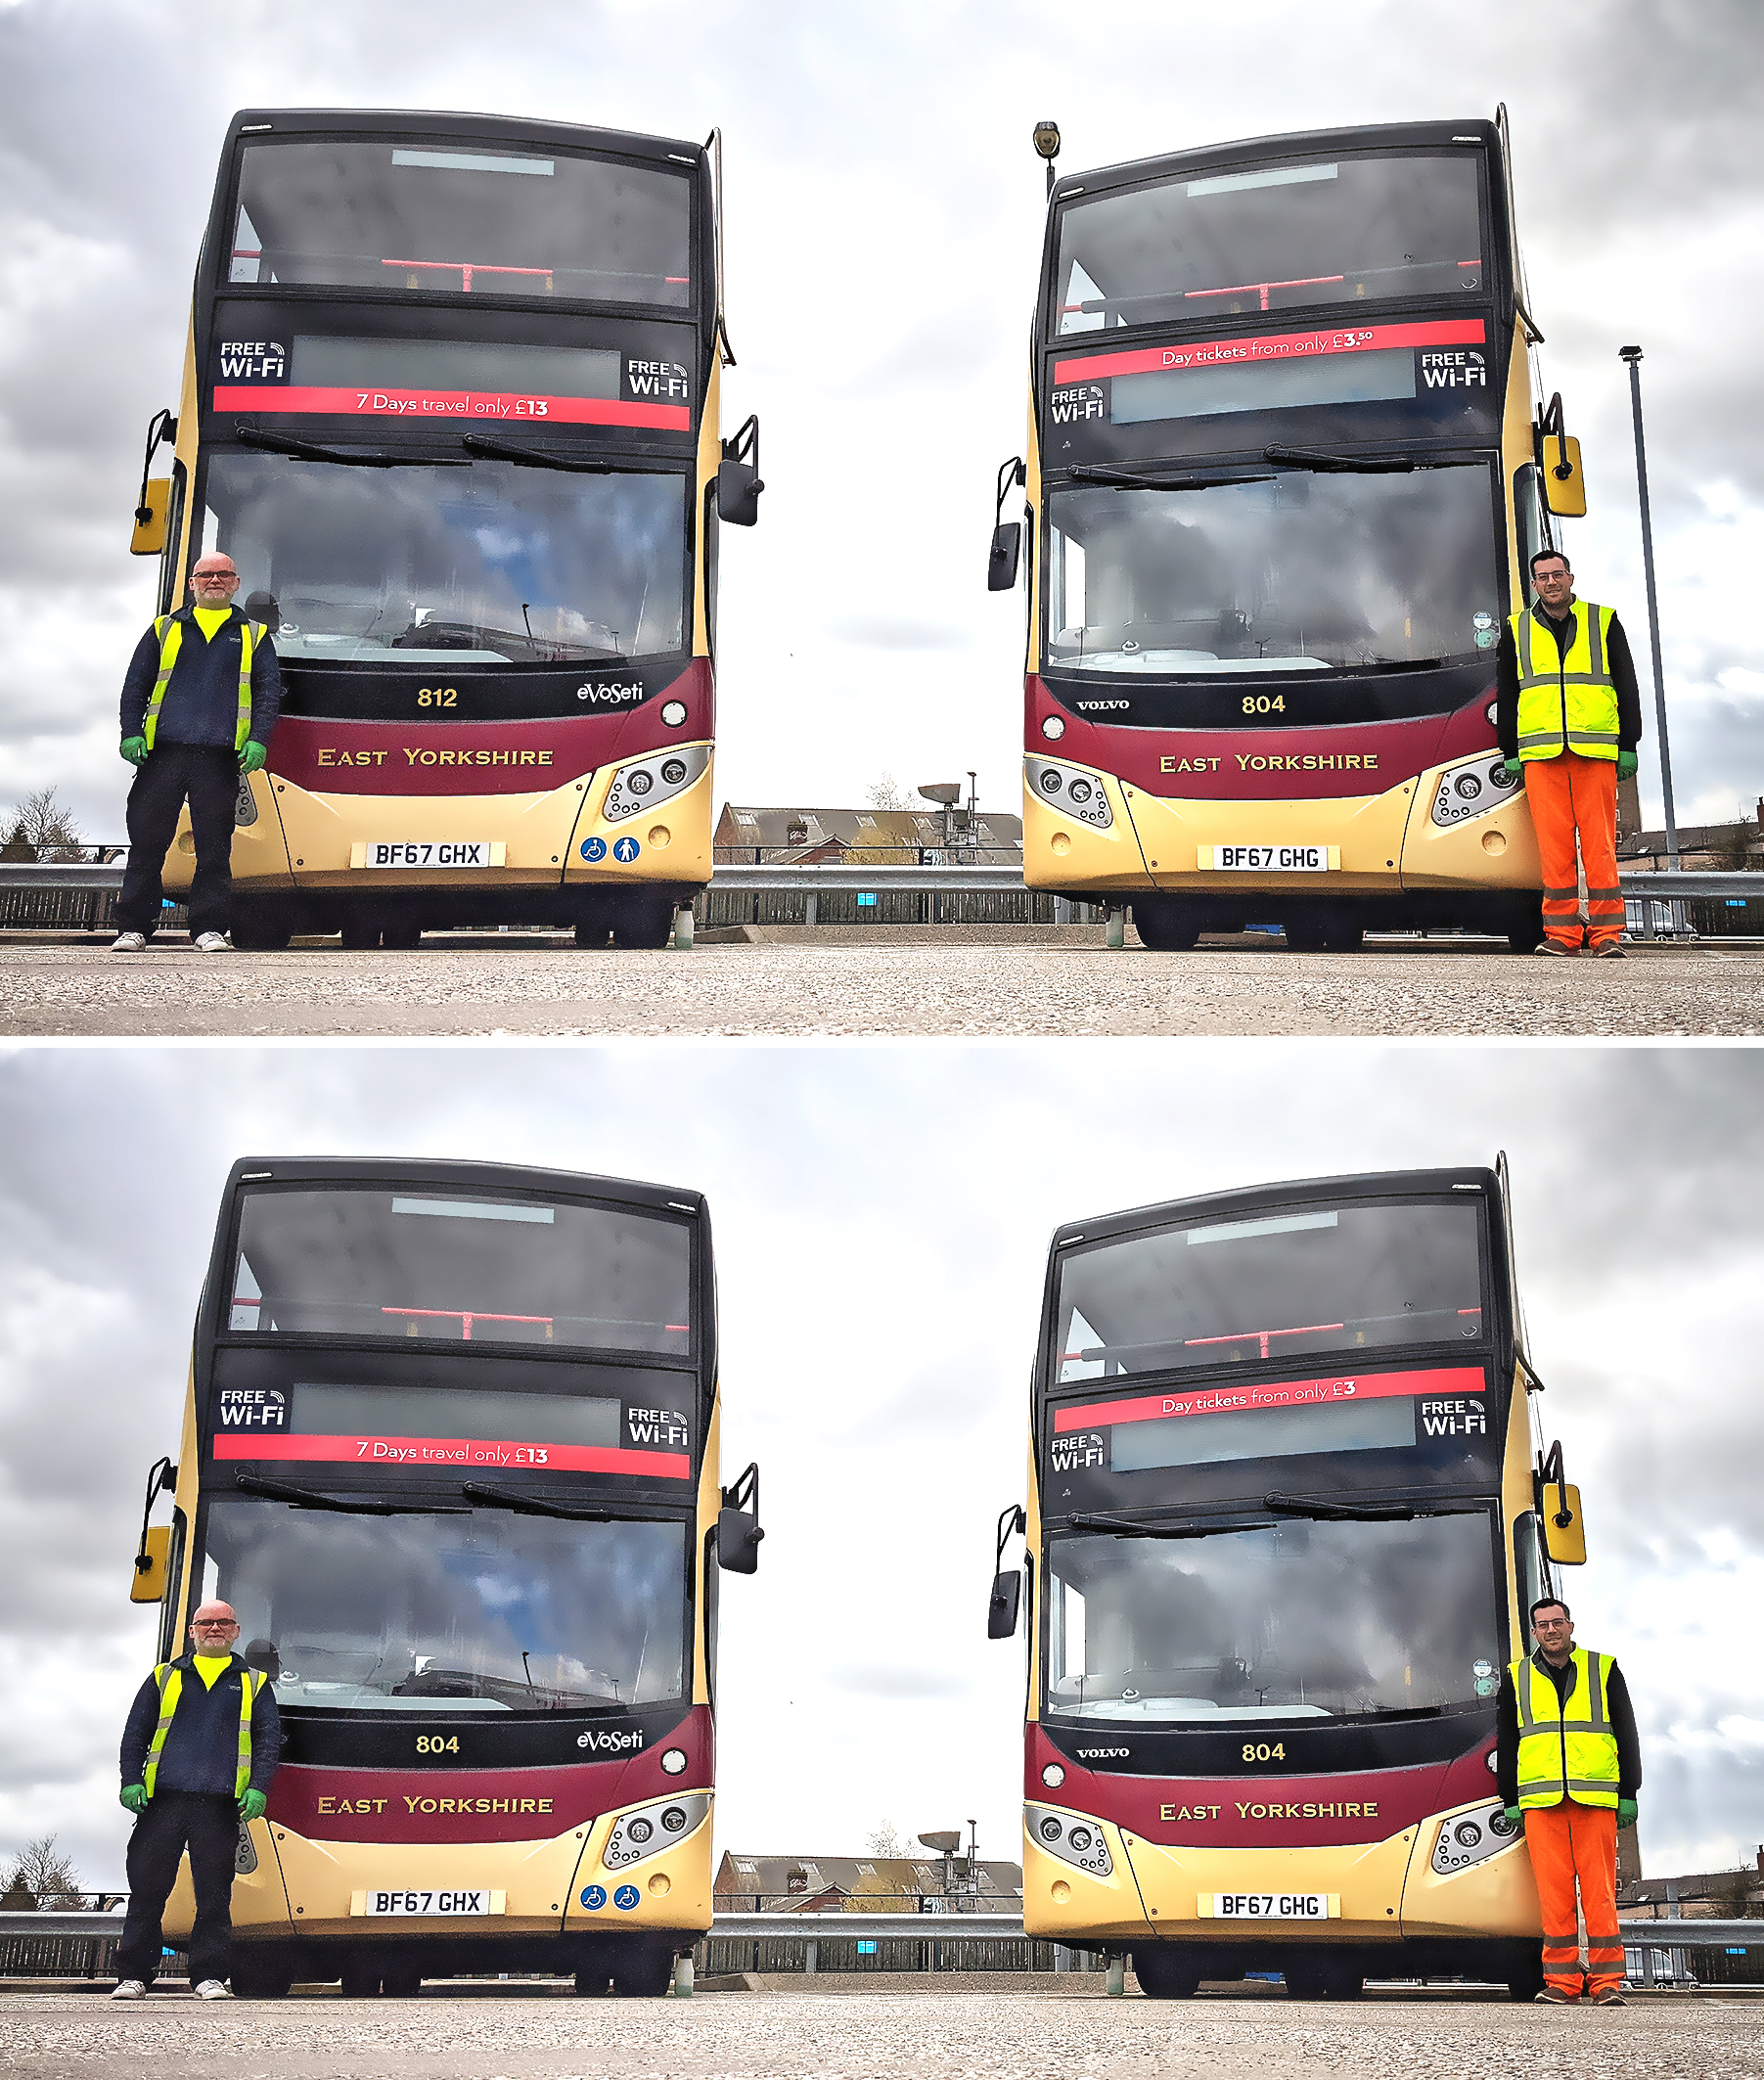 Two men in high-viz clothing stand beside two double decker buses